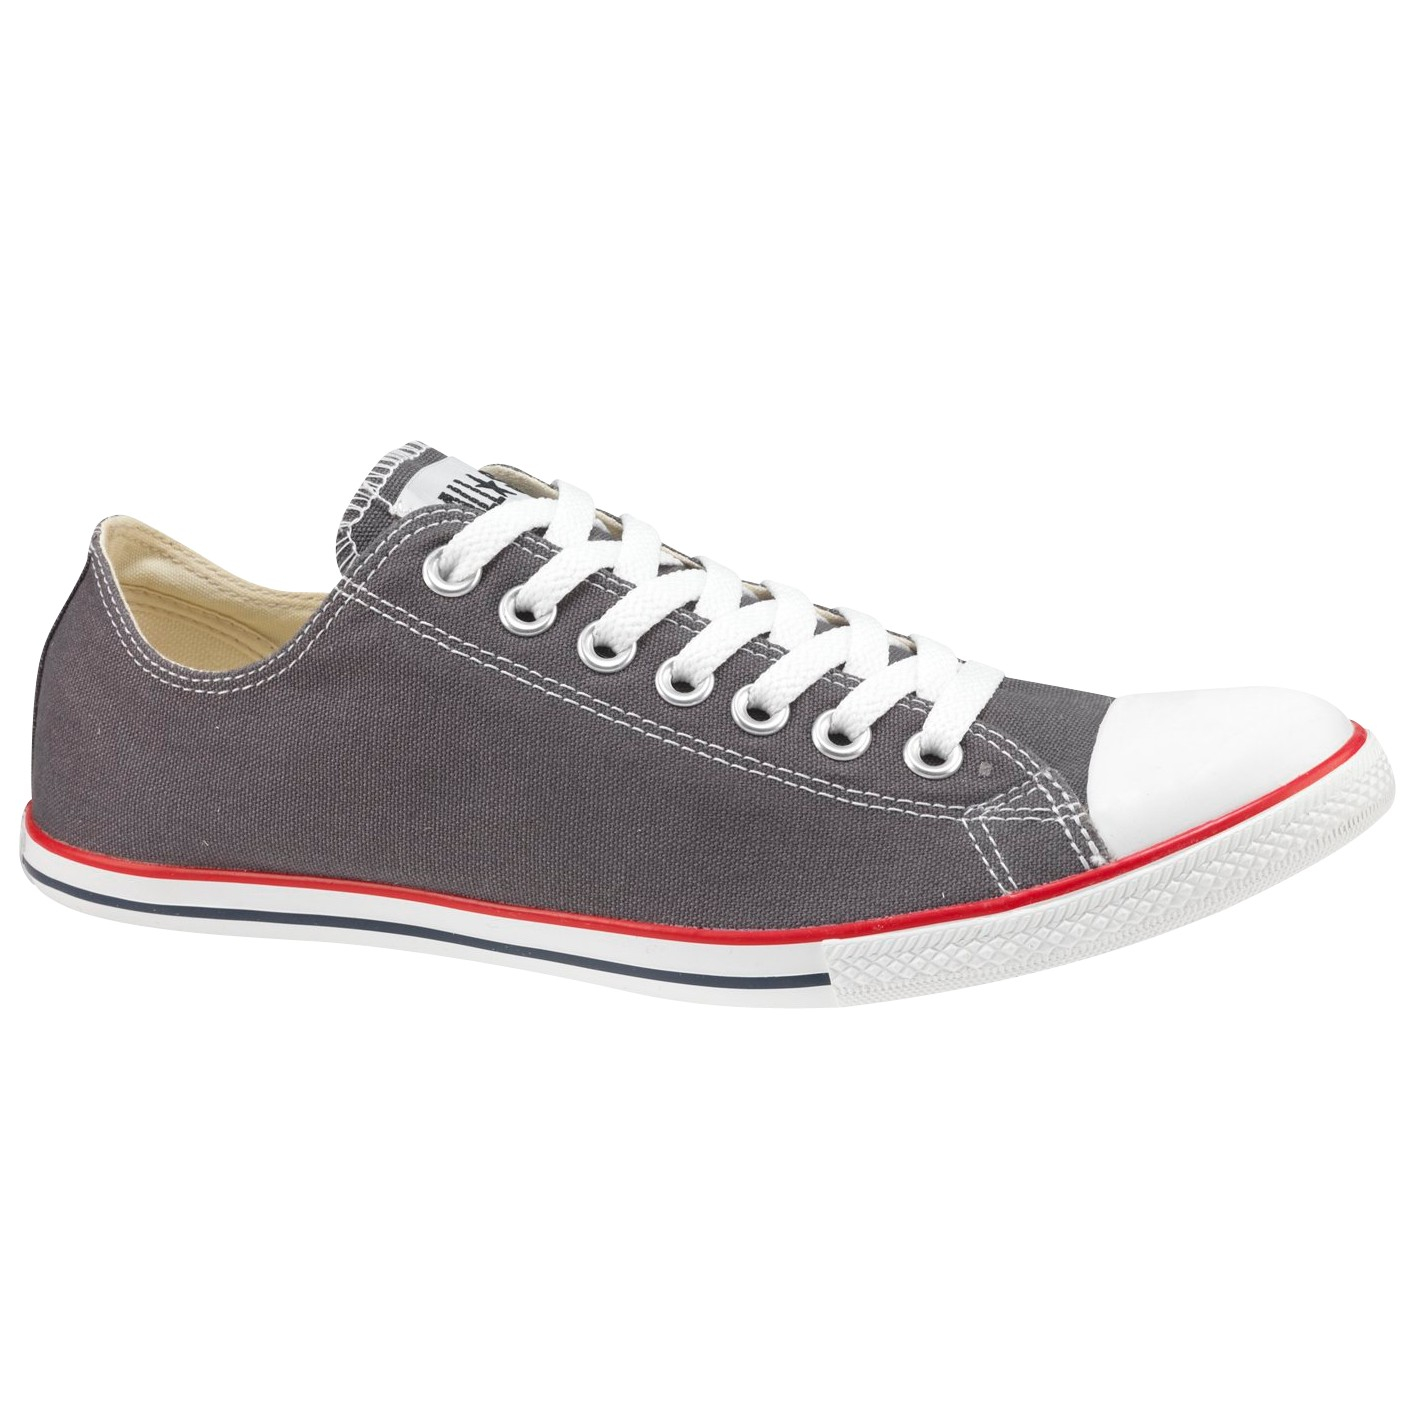 b35af53927da Converse All Star Slim Ox Chuck Taylor Trainers Charcoal in Gray for ...